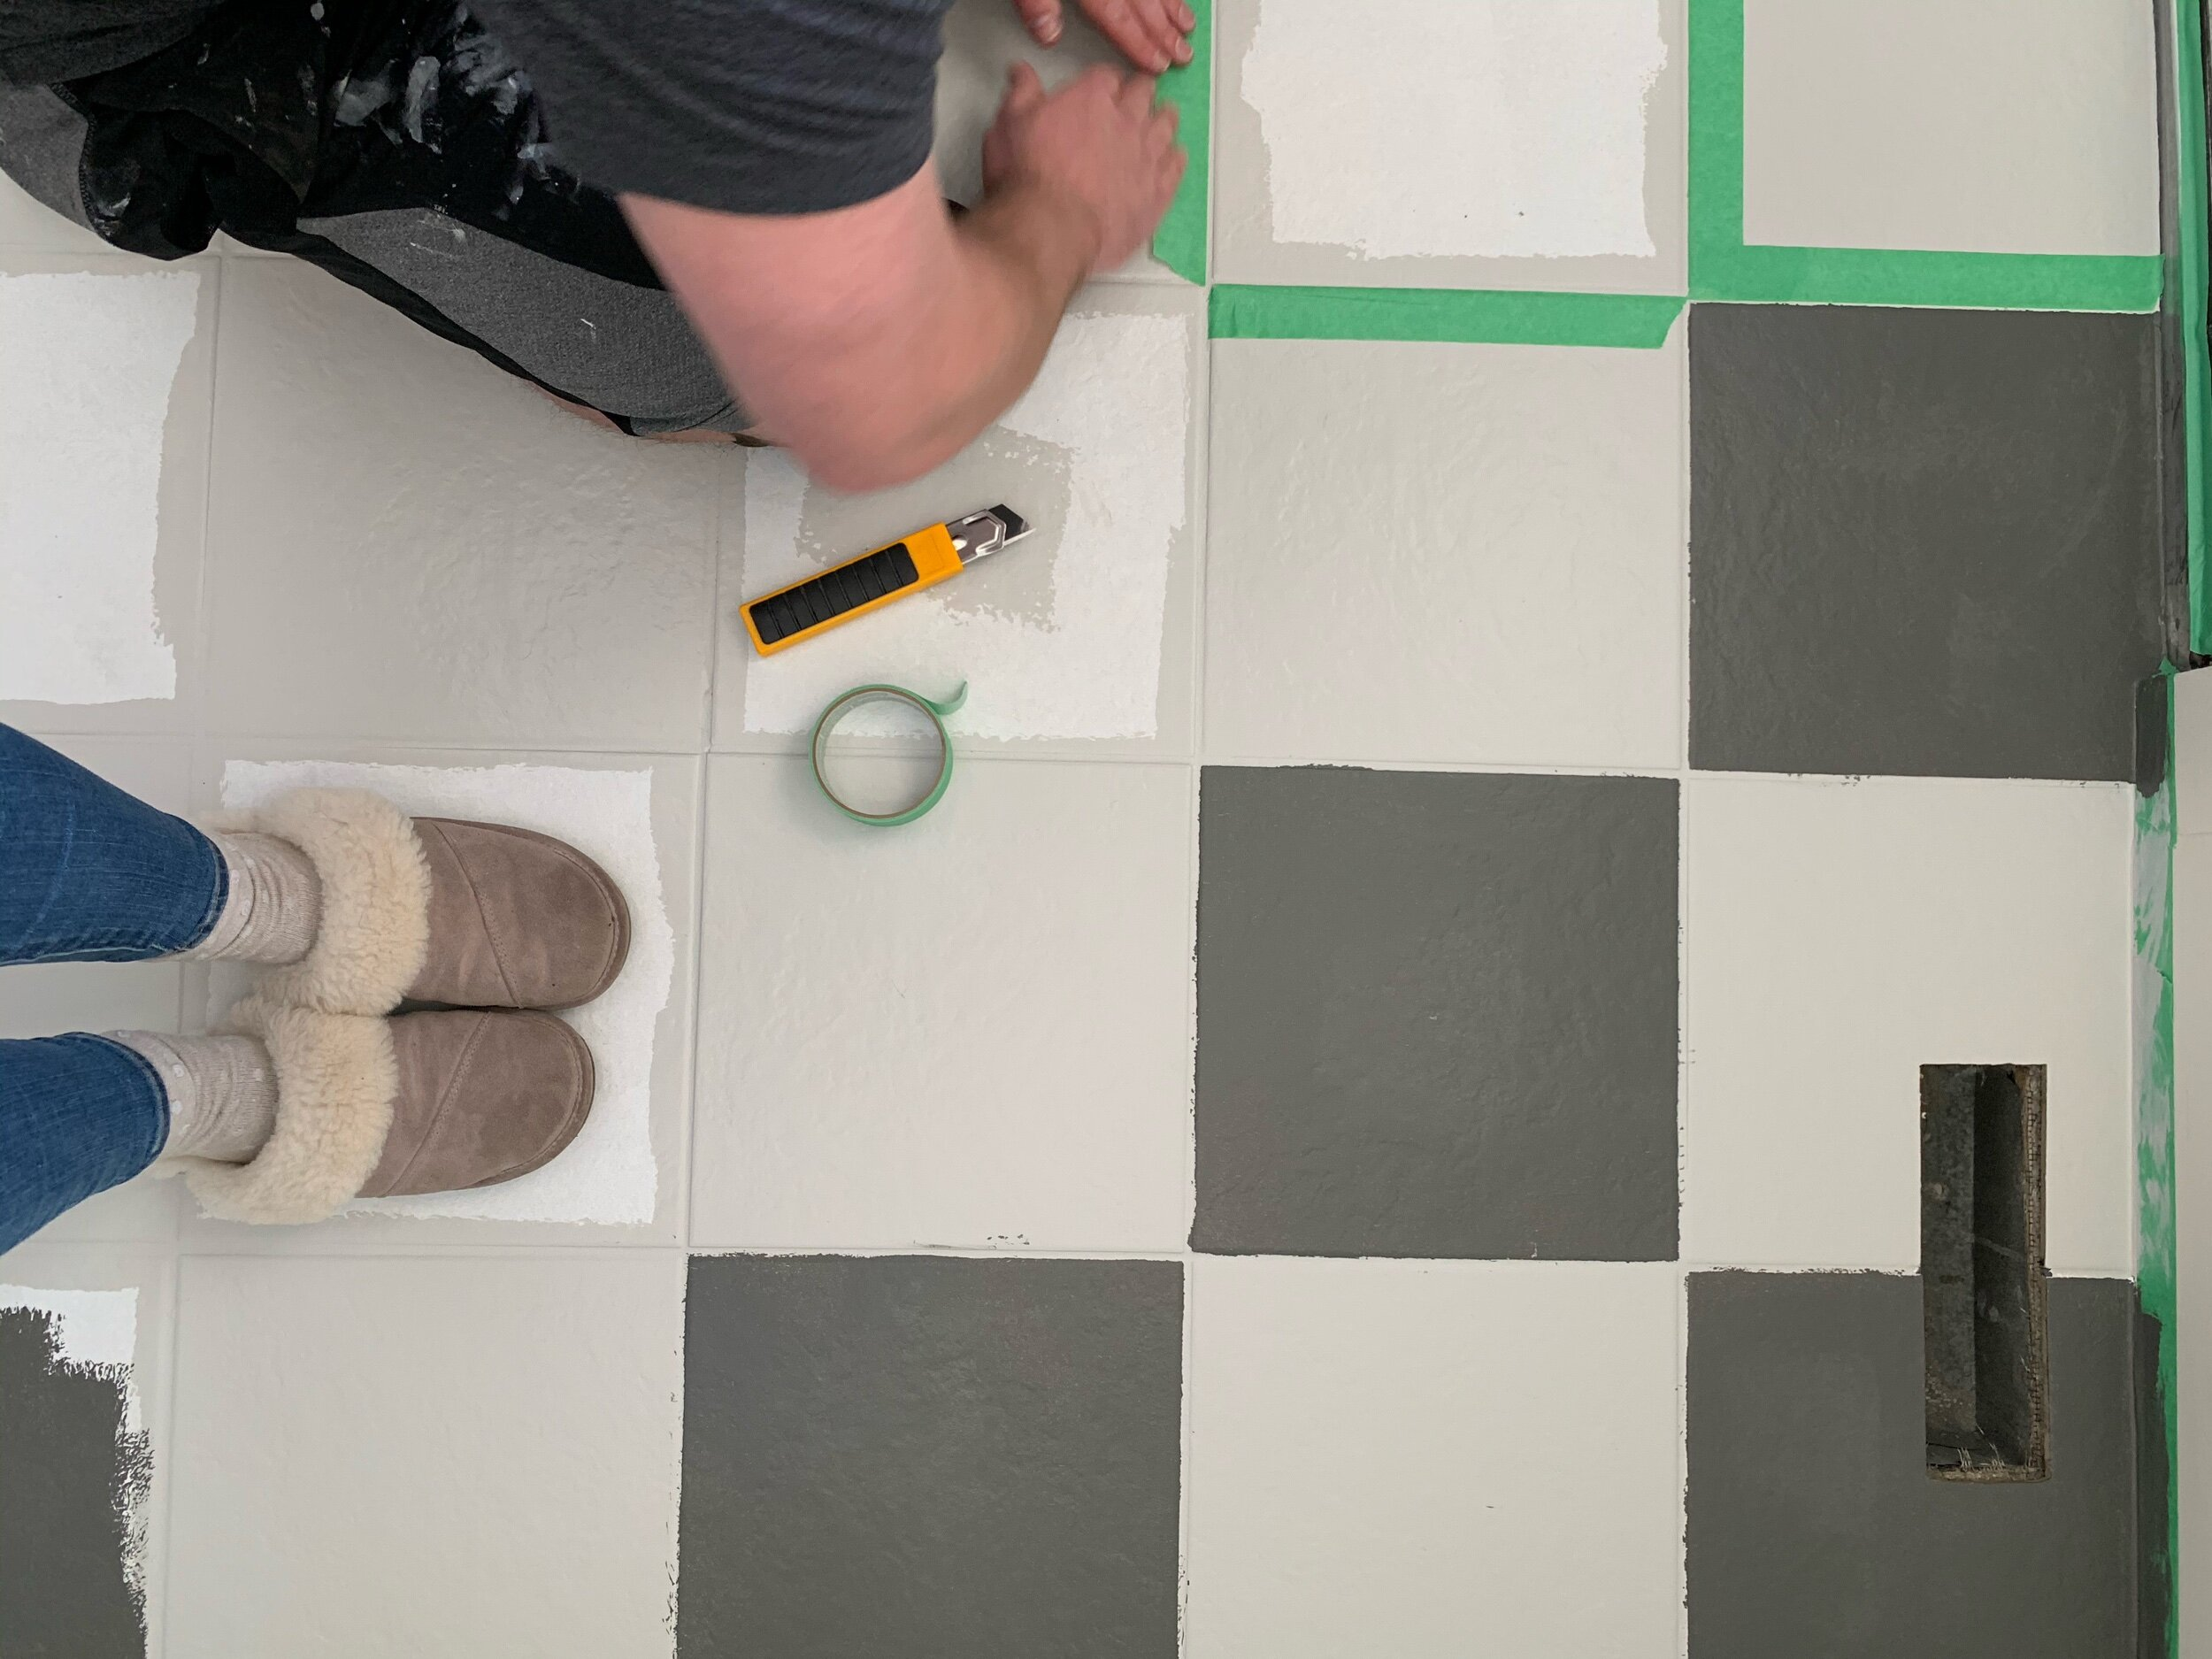 this is a photo of creating a checker board pattern with frog tape on tile floors with repose grey paint and kendall charcoal paint